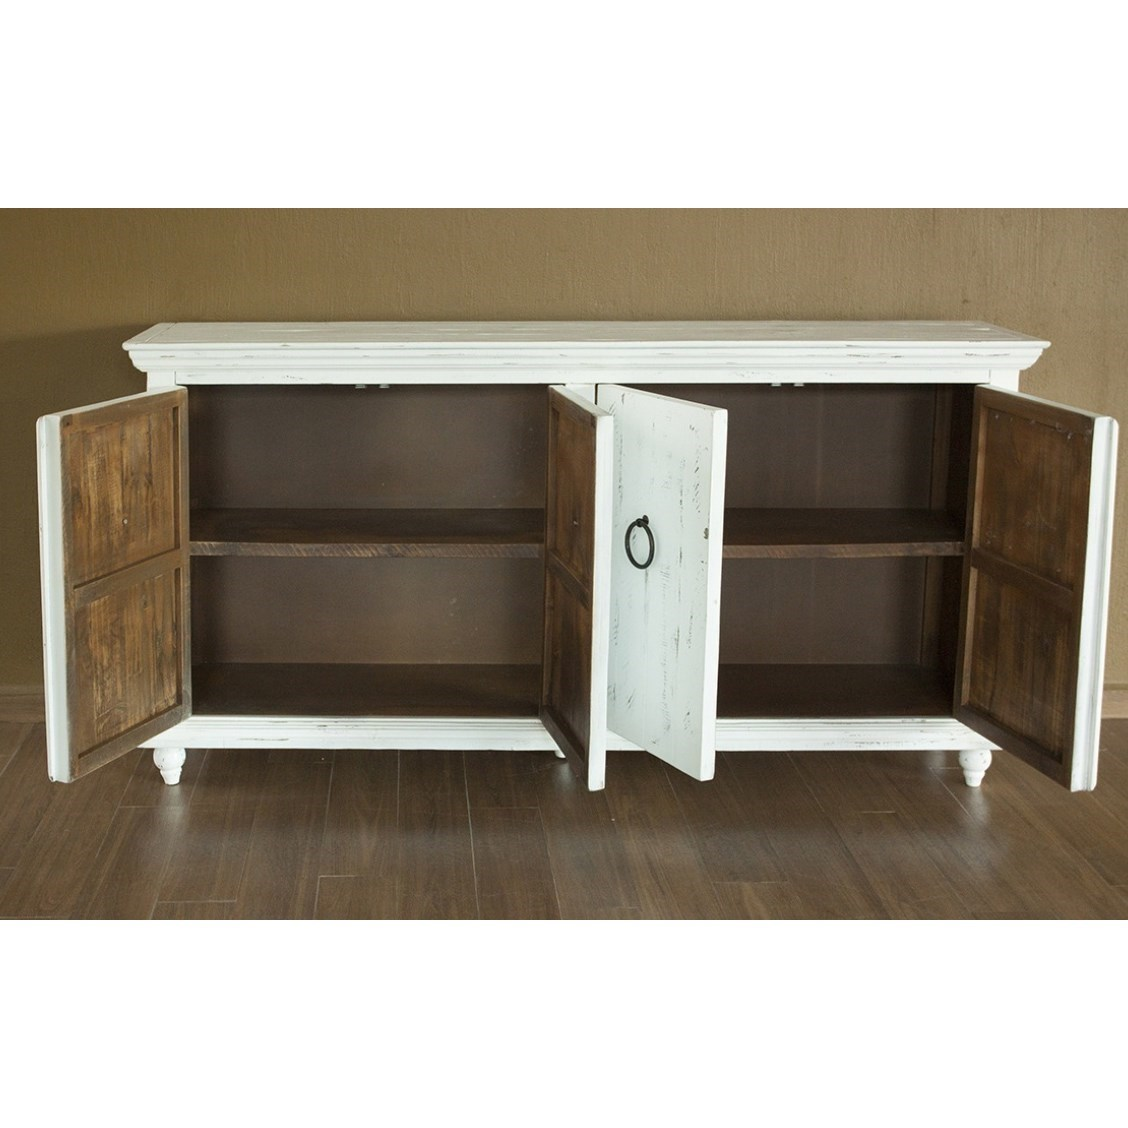 Shop Furniture Direct: International Furniture Direct Capri IFD990CONS-W Ivory 4